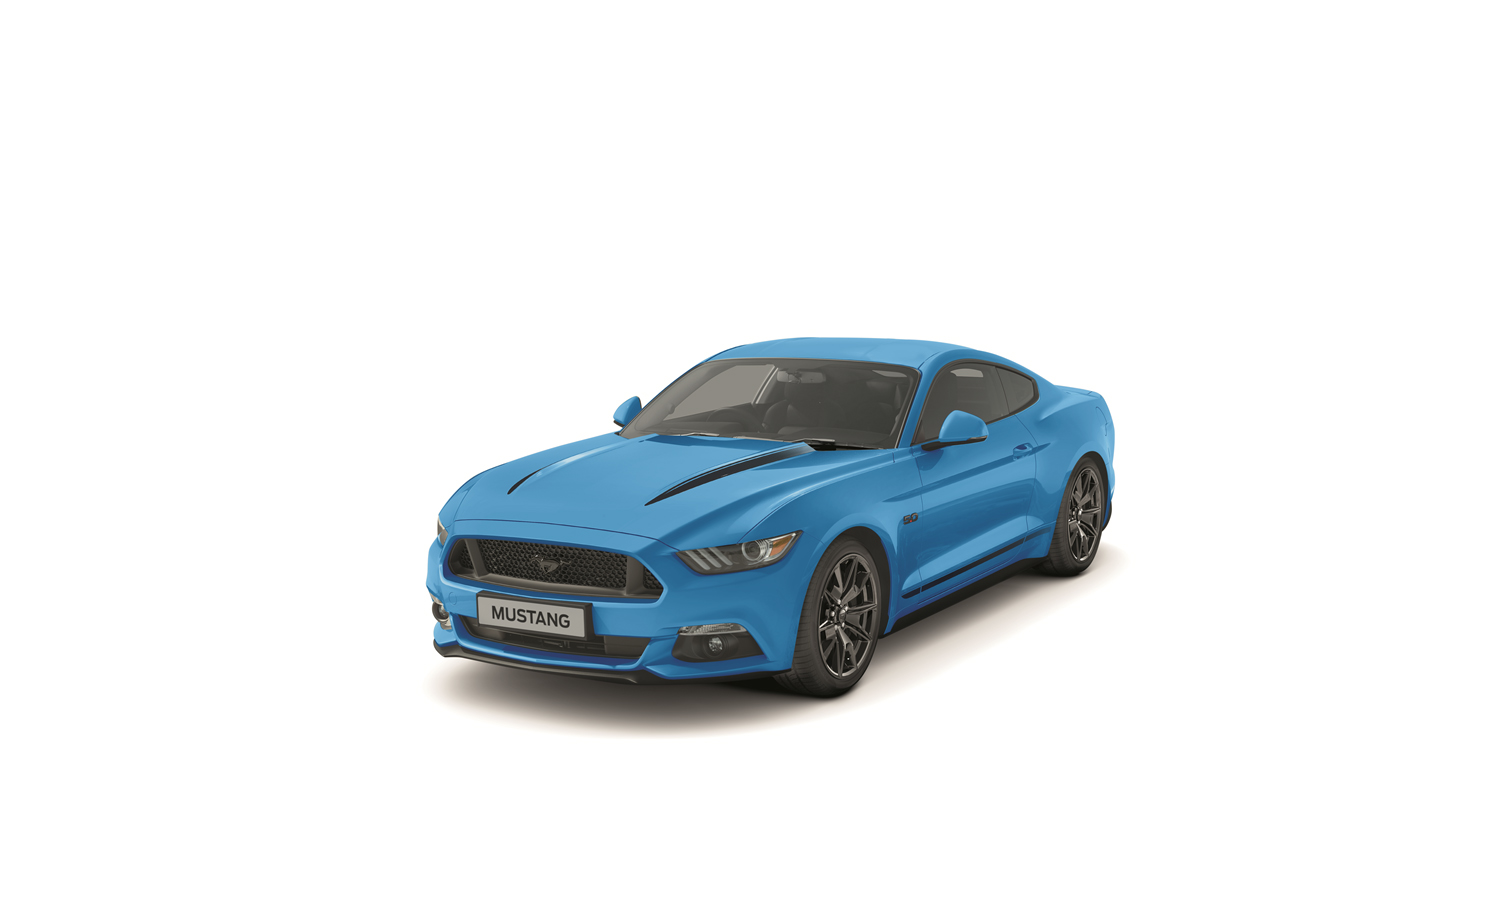 the motoring world the best selling sports car in the world in 2016 was the ford mustang and. Black Bedroom Furniture Sets. Home Design Ideas